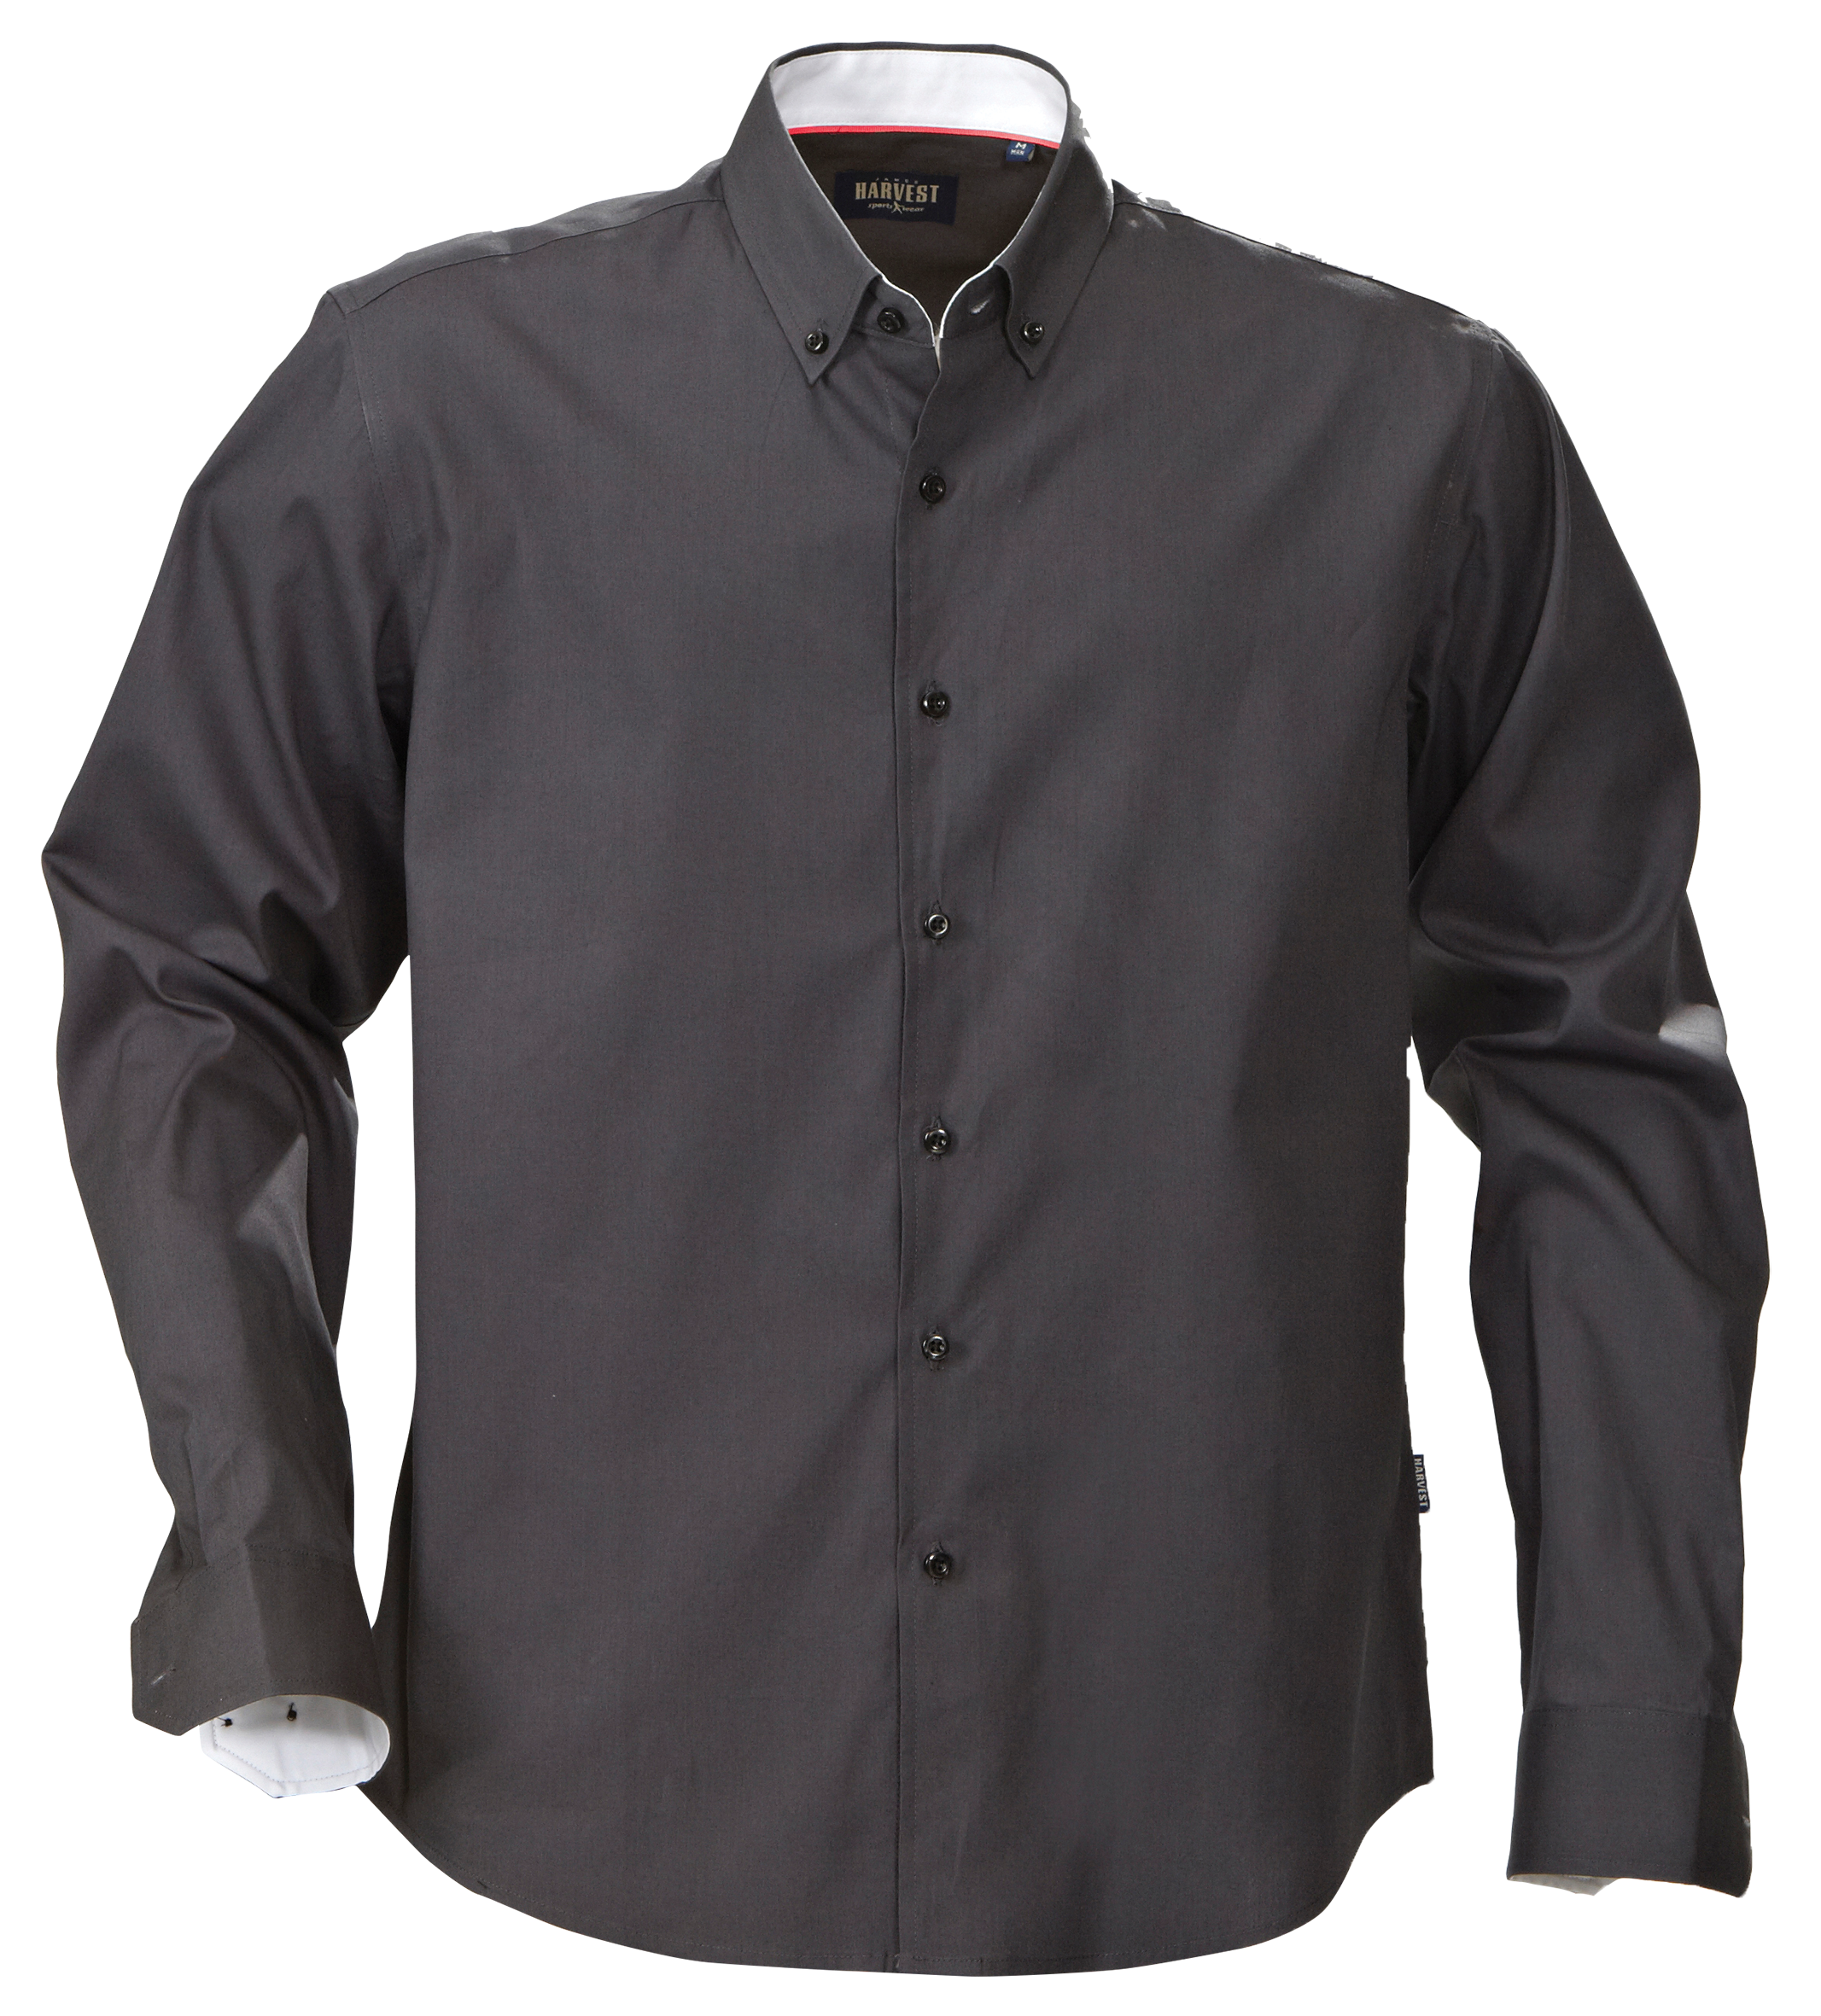 Redding Men 914 Charcoal